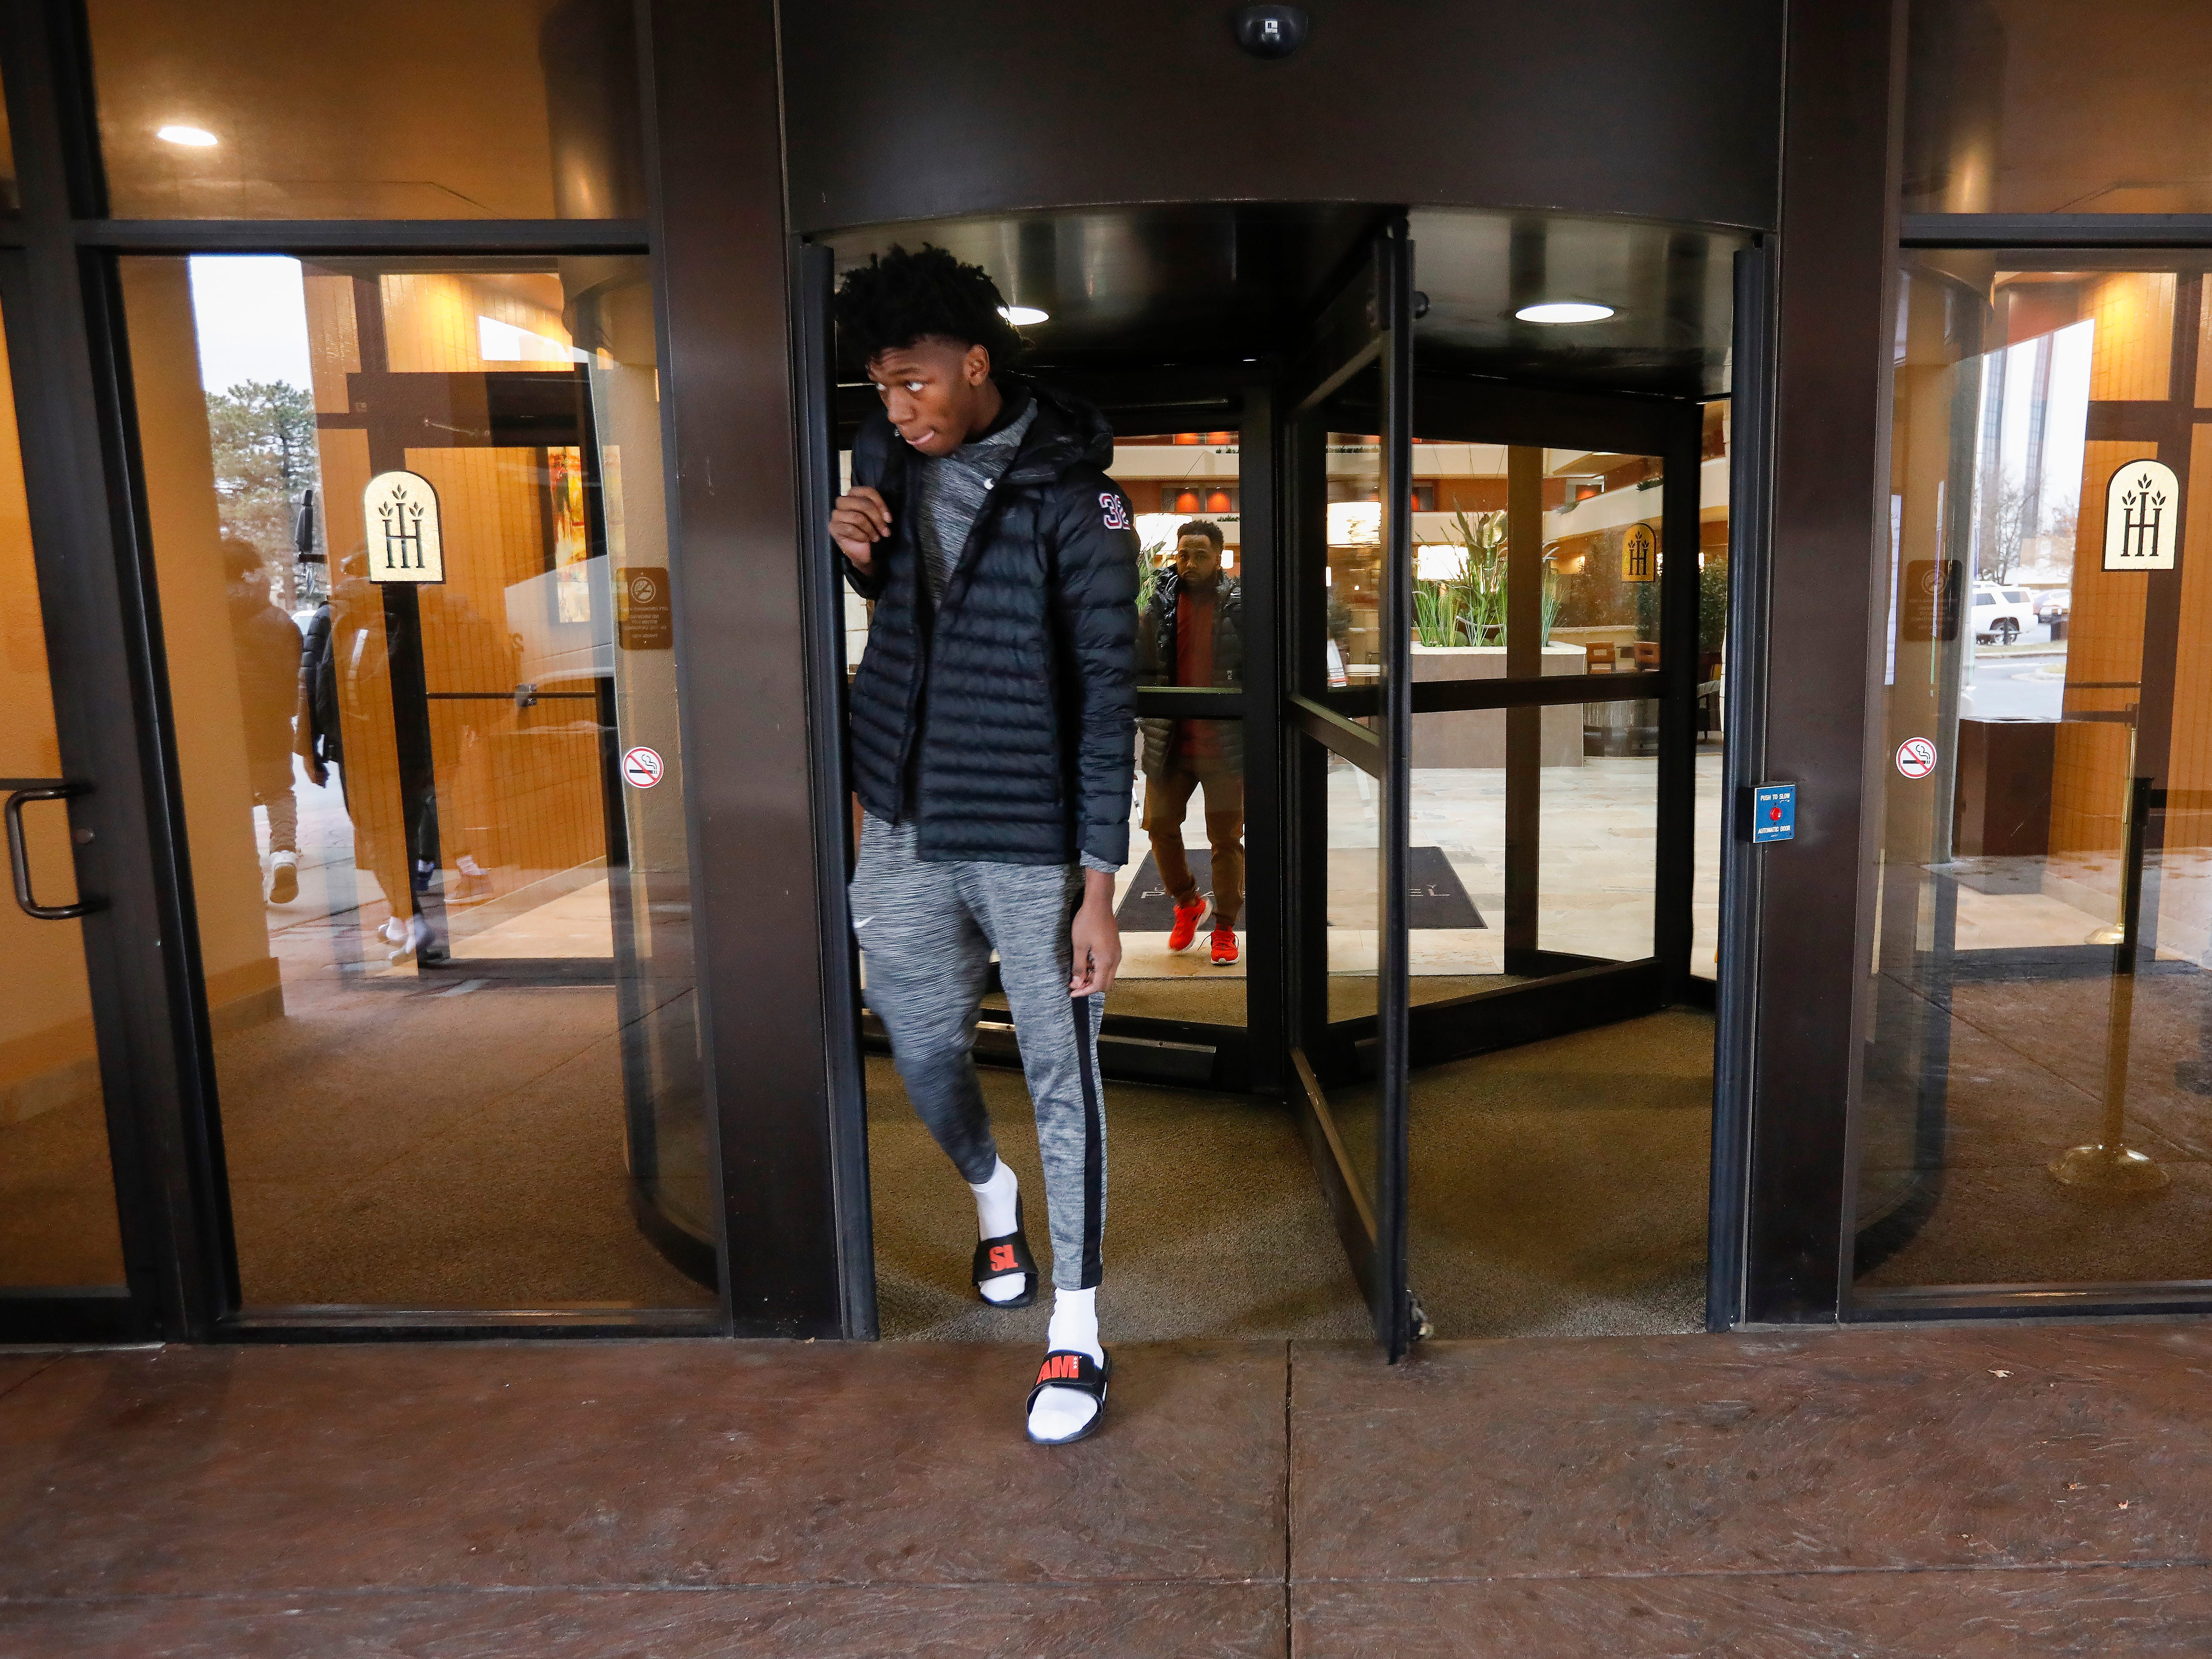 James Wiseman, of Memphis East High School, walks out of the University Plaza Hotel before his game in the Bass Pro Shops Tournament of Champions at JQH Arena on Thursday, Jan. 17, 2019.